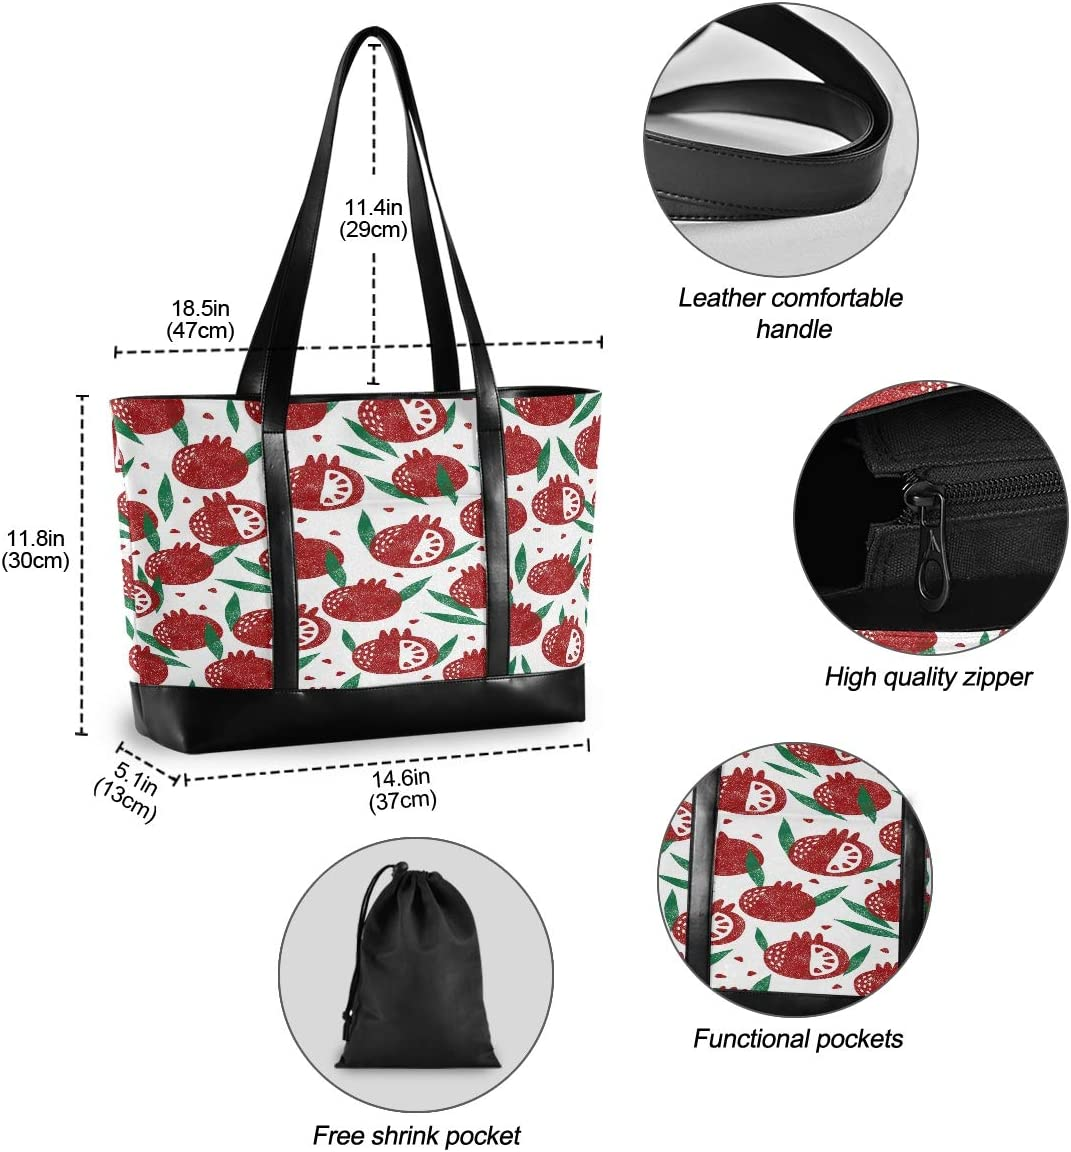 Large Woman Laptop Tote Bag Seamless Pattern Pomegranate Fruit Canvas Shoulder Tote Bag Fit 15.6 Inch Computer Ladies Briefcase for Work School Outdoor Activities